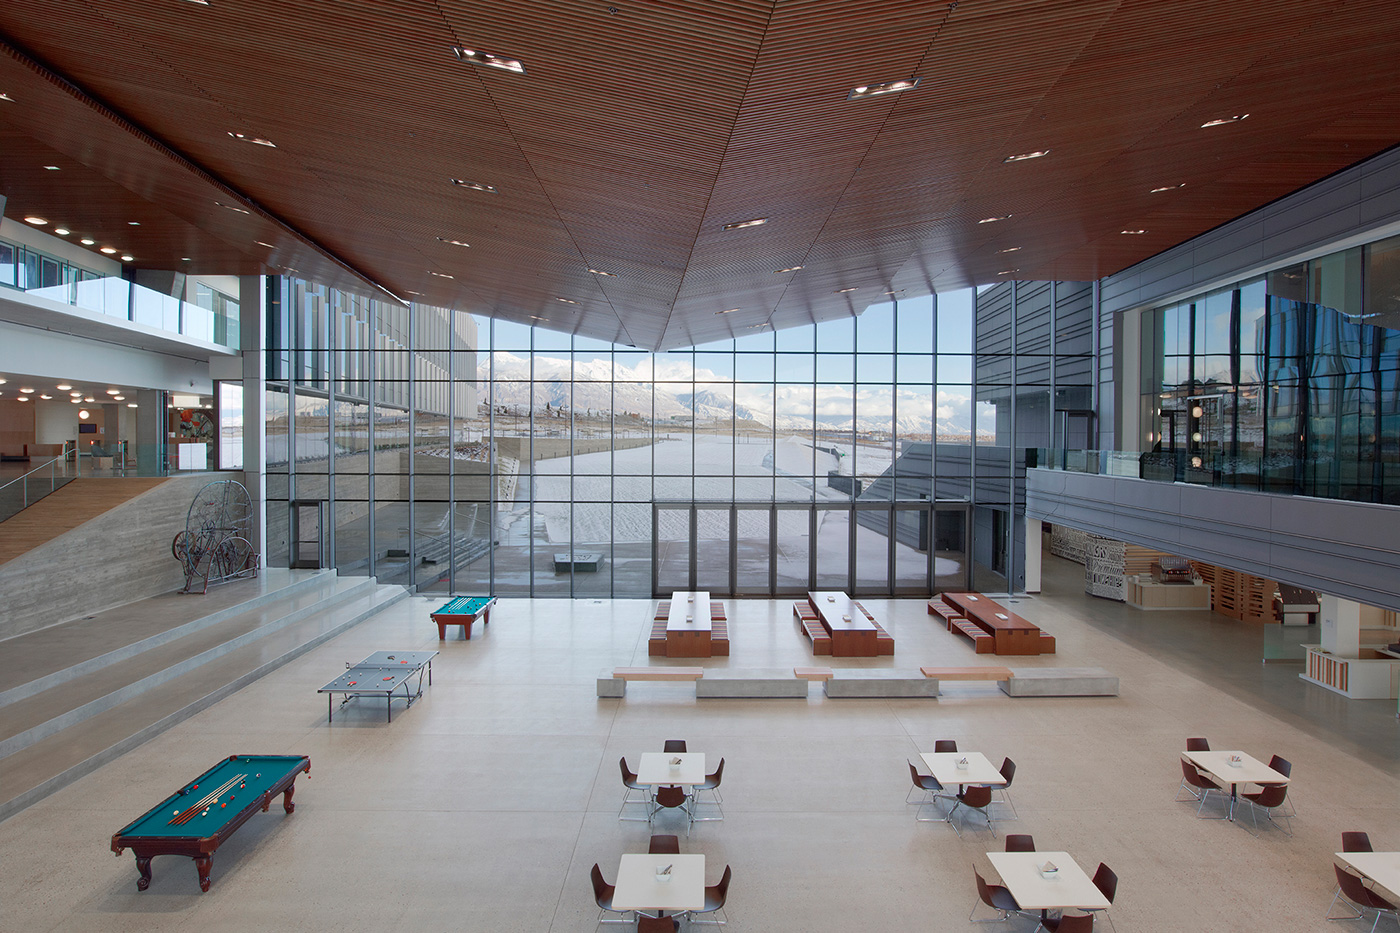 Adobe's Beautiful Utah Campus